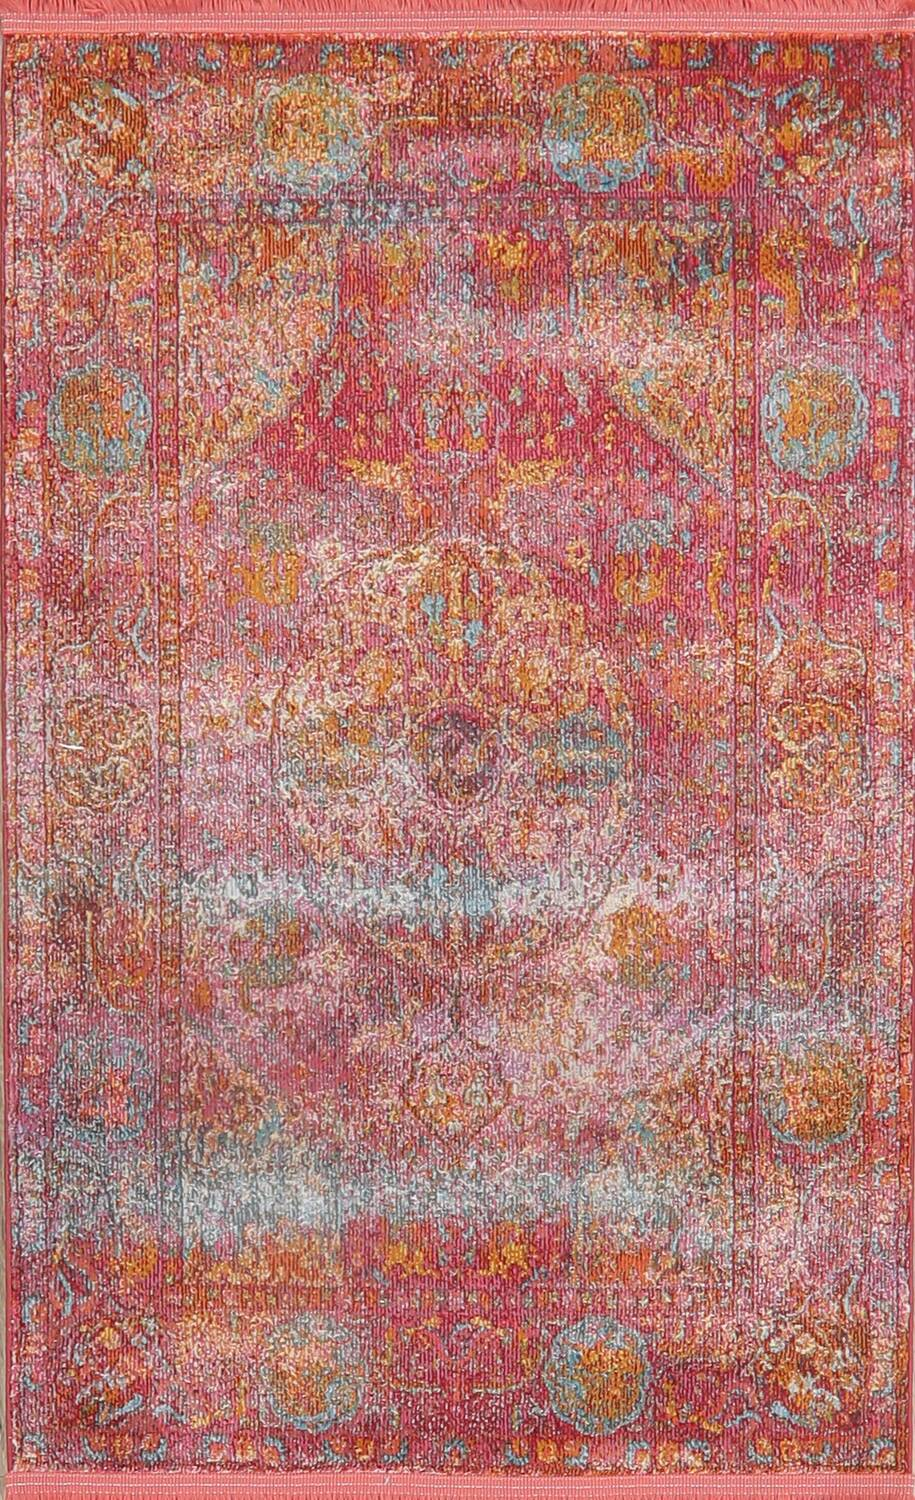 Hunting Design Pictorial Distressed Heat-Set Area Rugs image 7